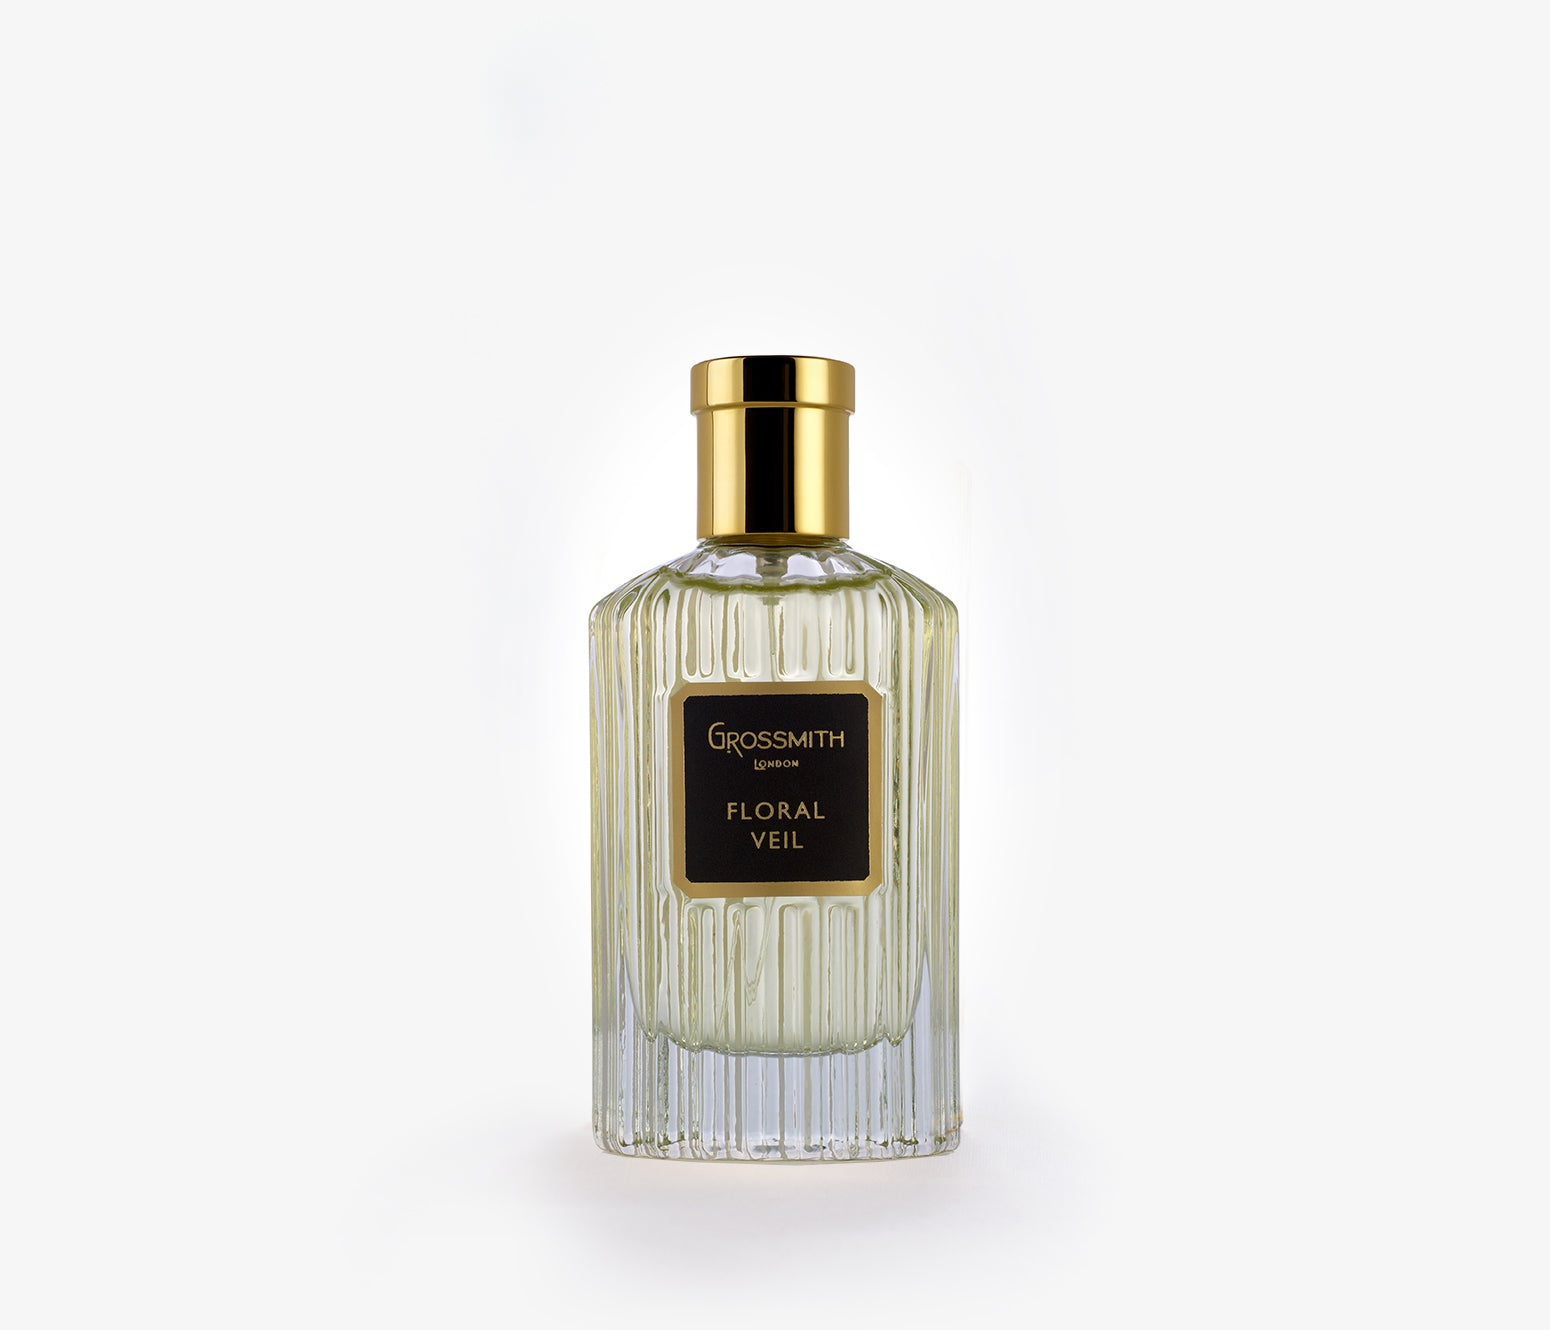 Grossmith London - Floral Veil - 50ml - MTT3512 - product image - Fragrance - Les Senteurs